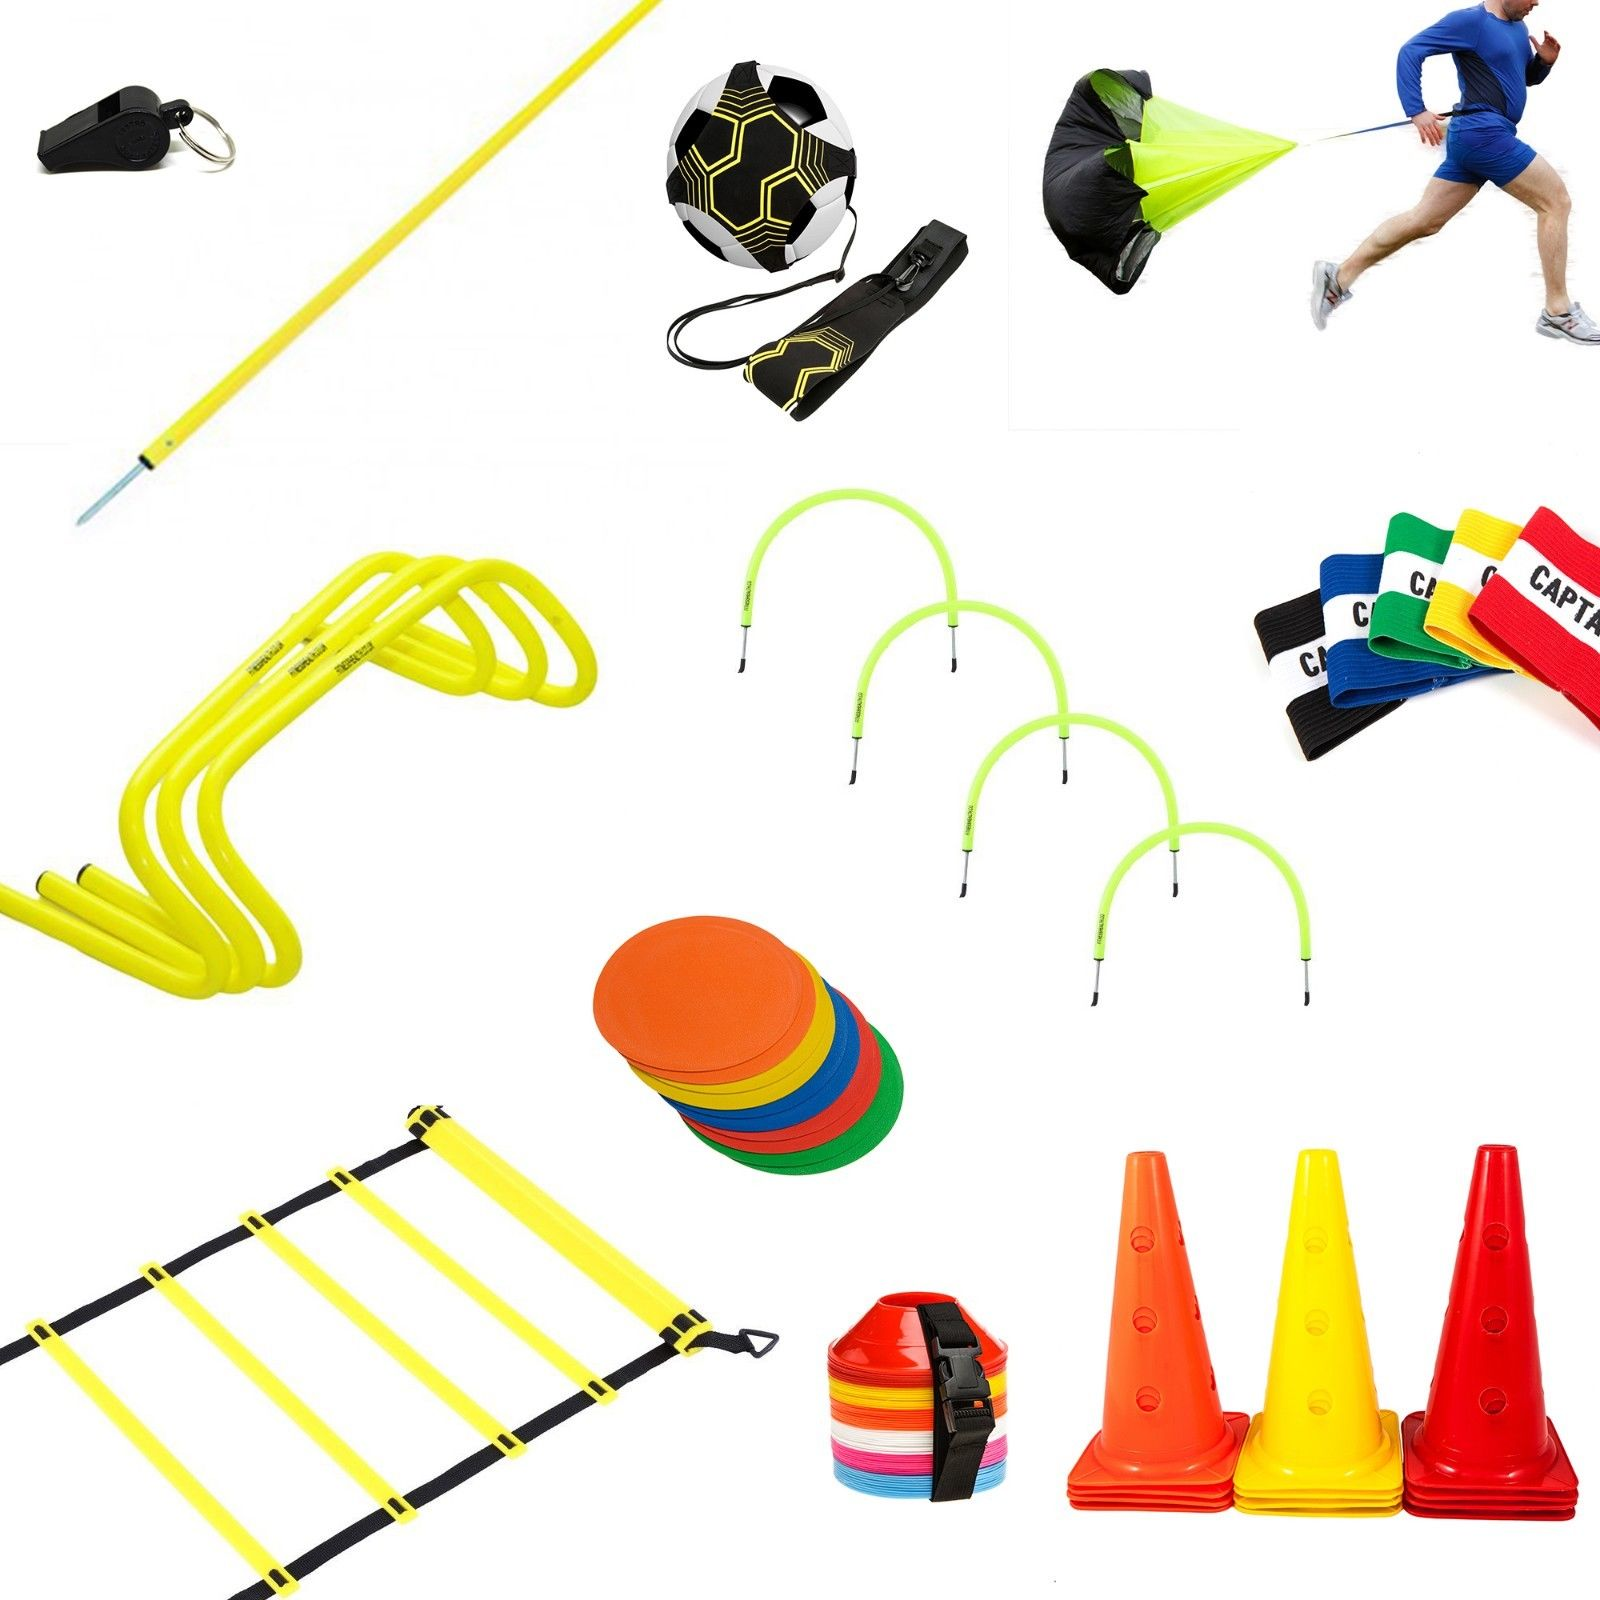 Amazon hot sell Pro Agility Ladder and Cones Speed Agility Hurdles Poles Cones Ladders set Football Training Sport Equipment